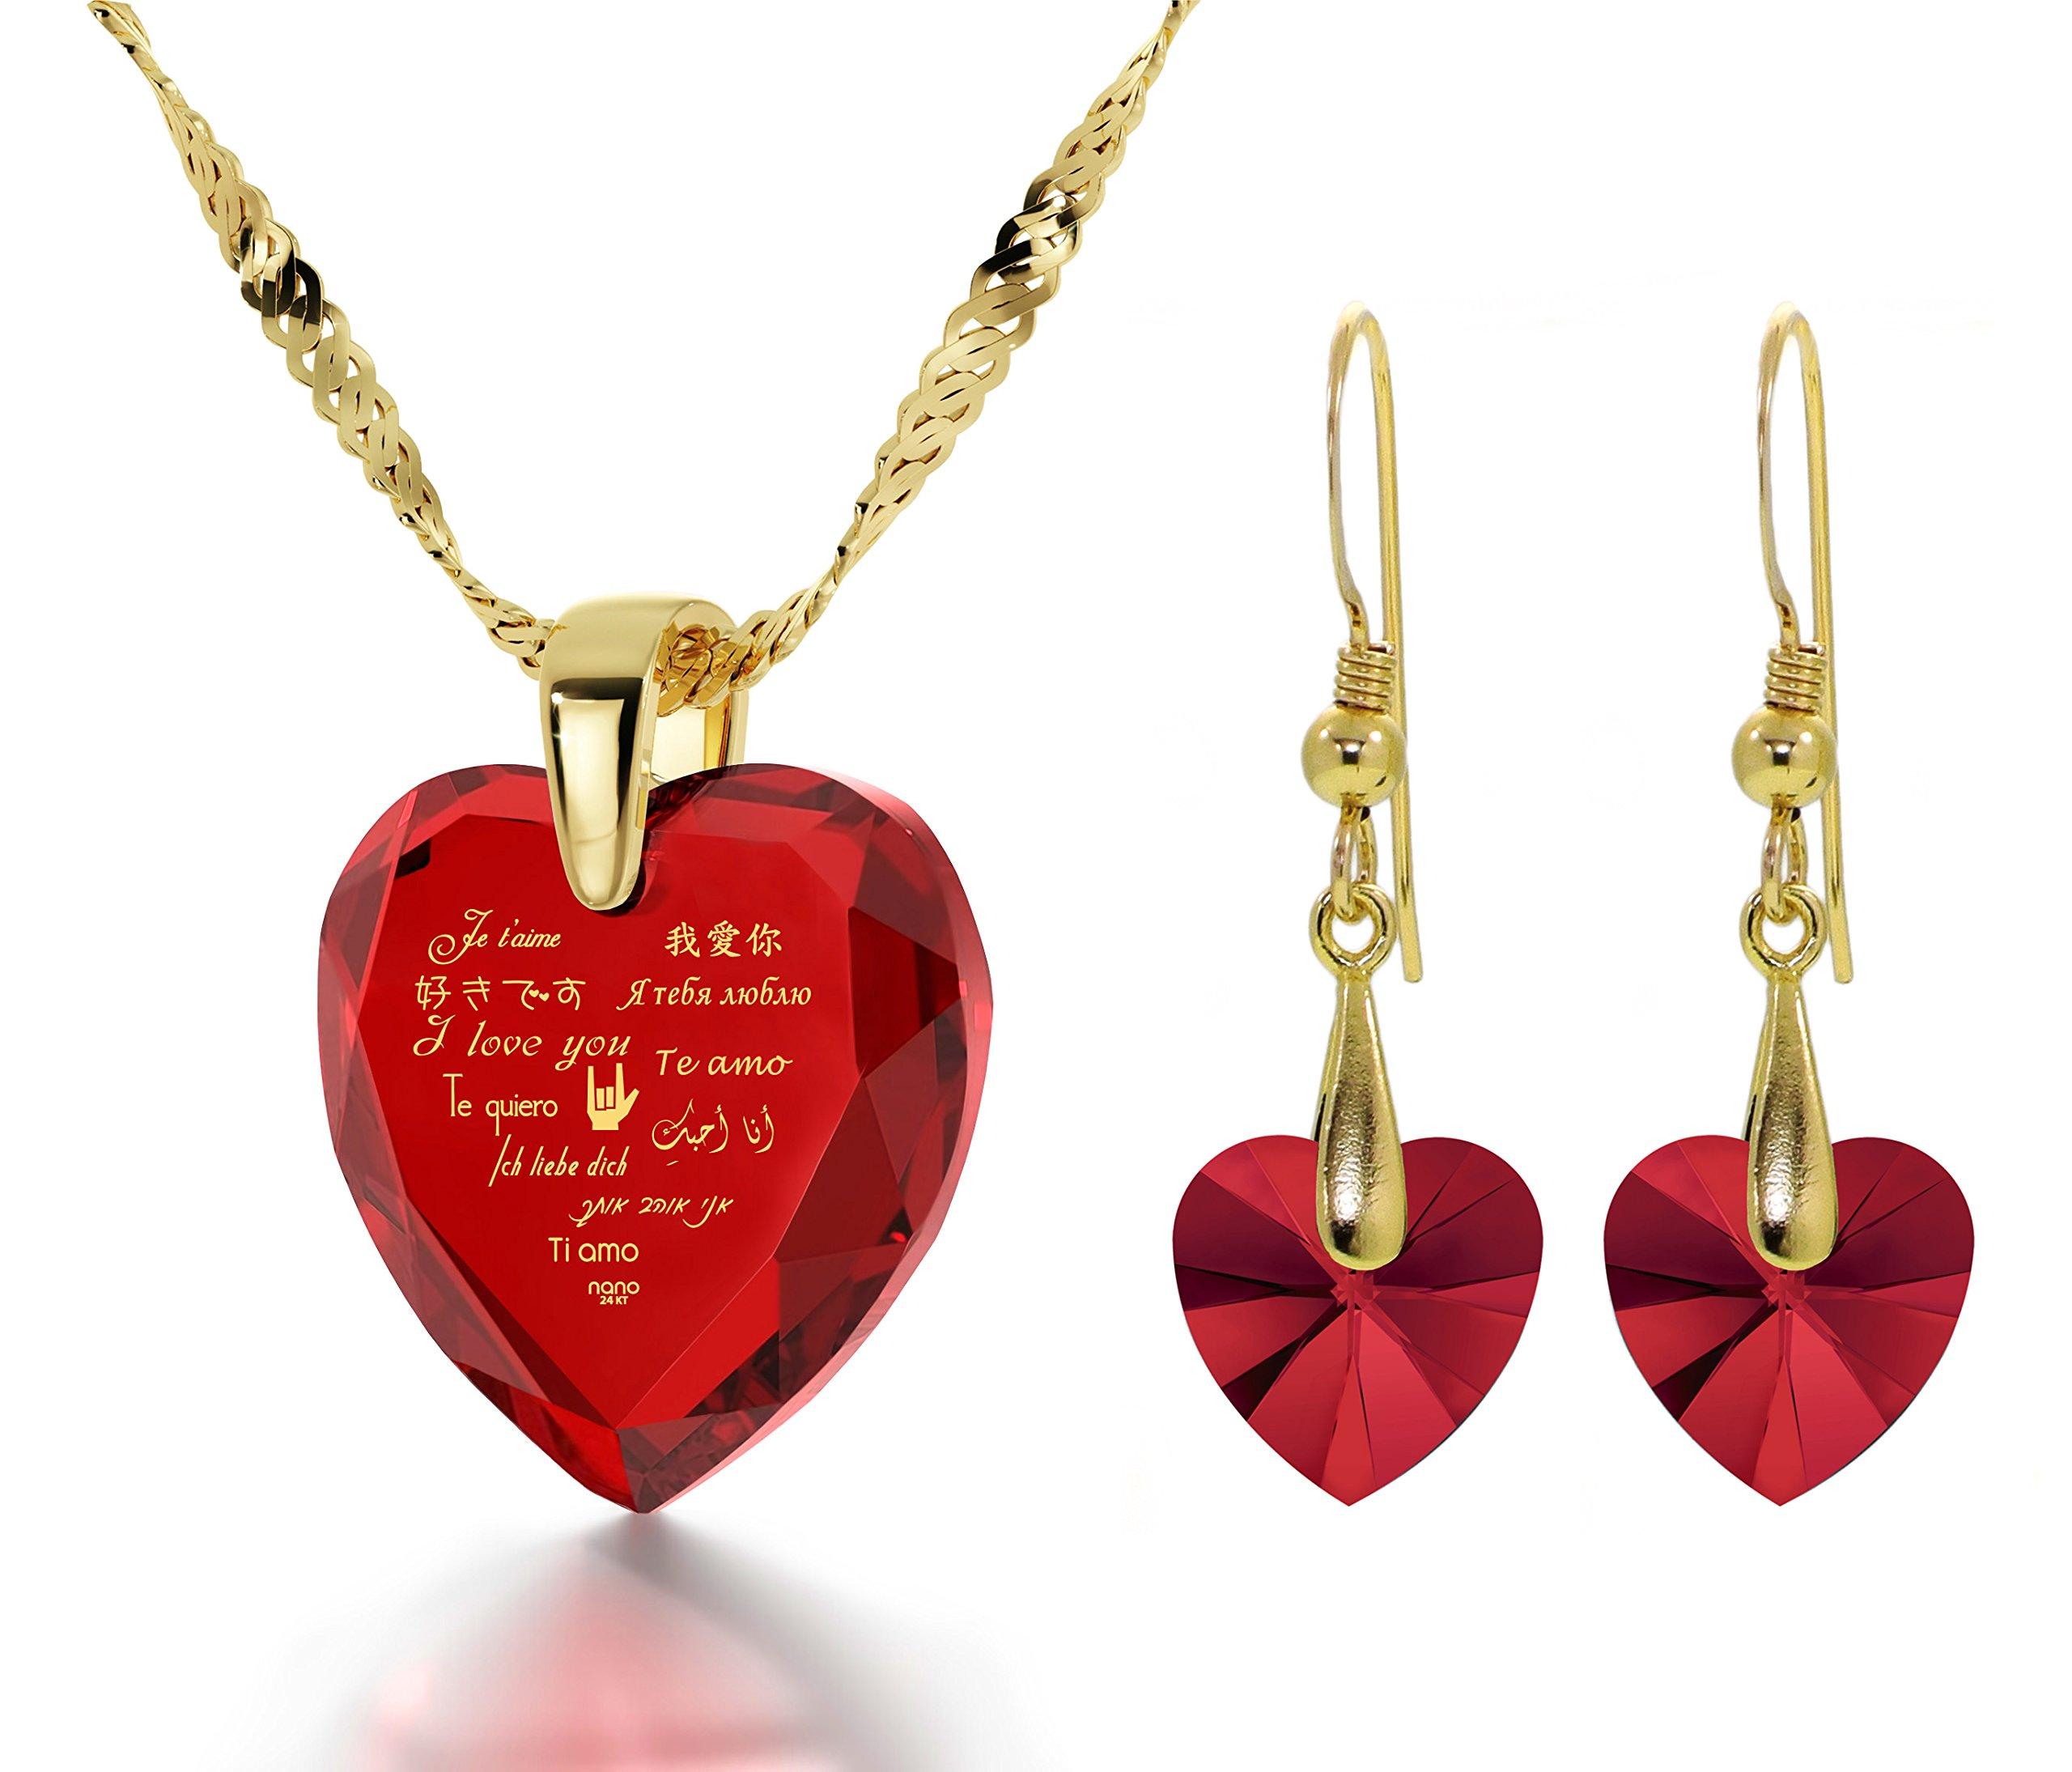 Gold Plated I Love You Necklace 12 Languages Gold Inscribed Red CZ - Crystal Earring Heart Jewelry Set by Nano Jewelry